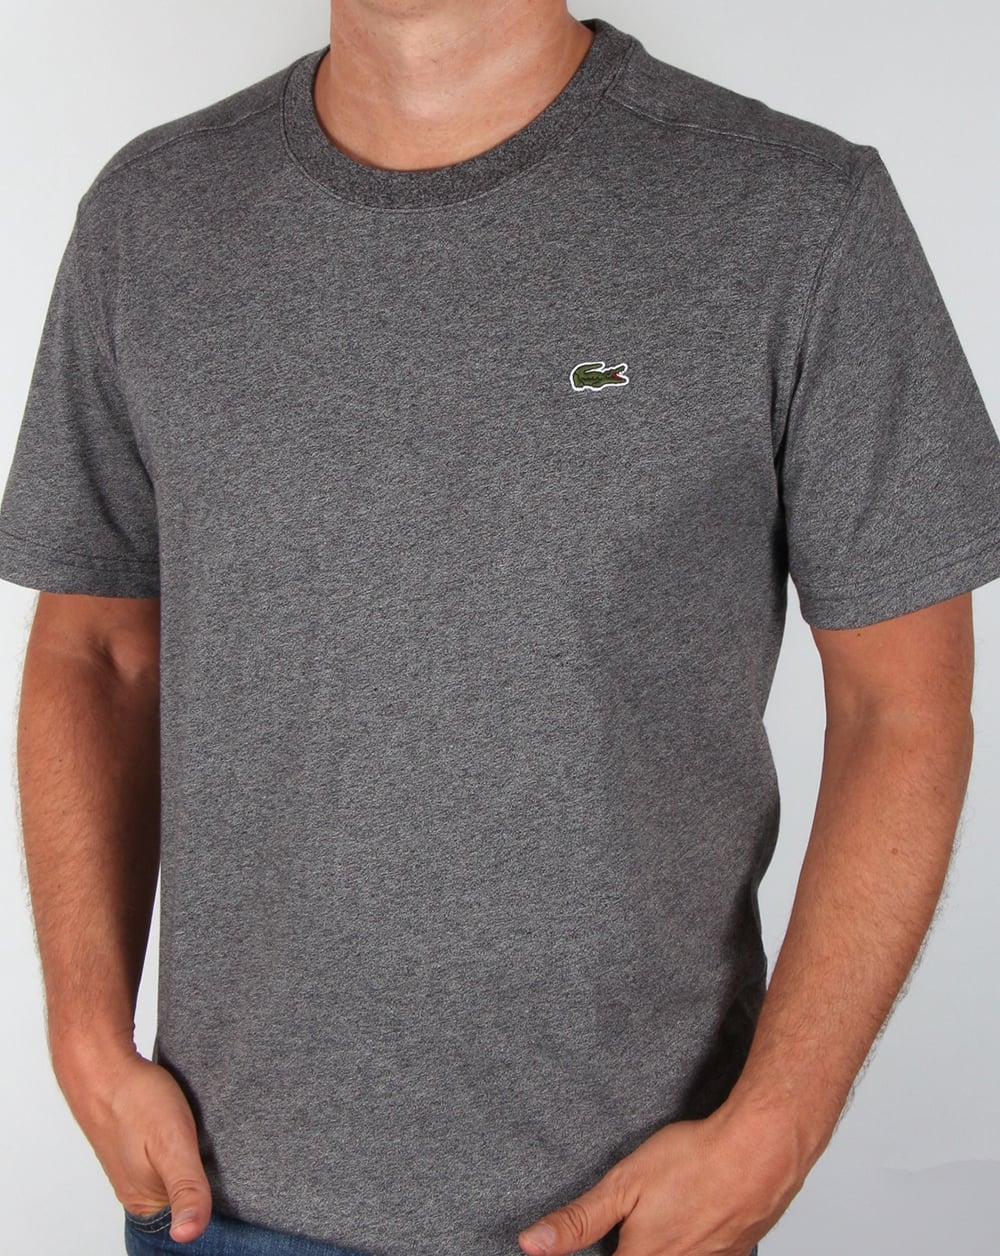 lacoste crew neck t shirt grey tee crew neck sport mens